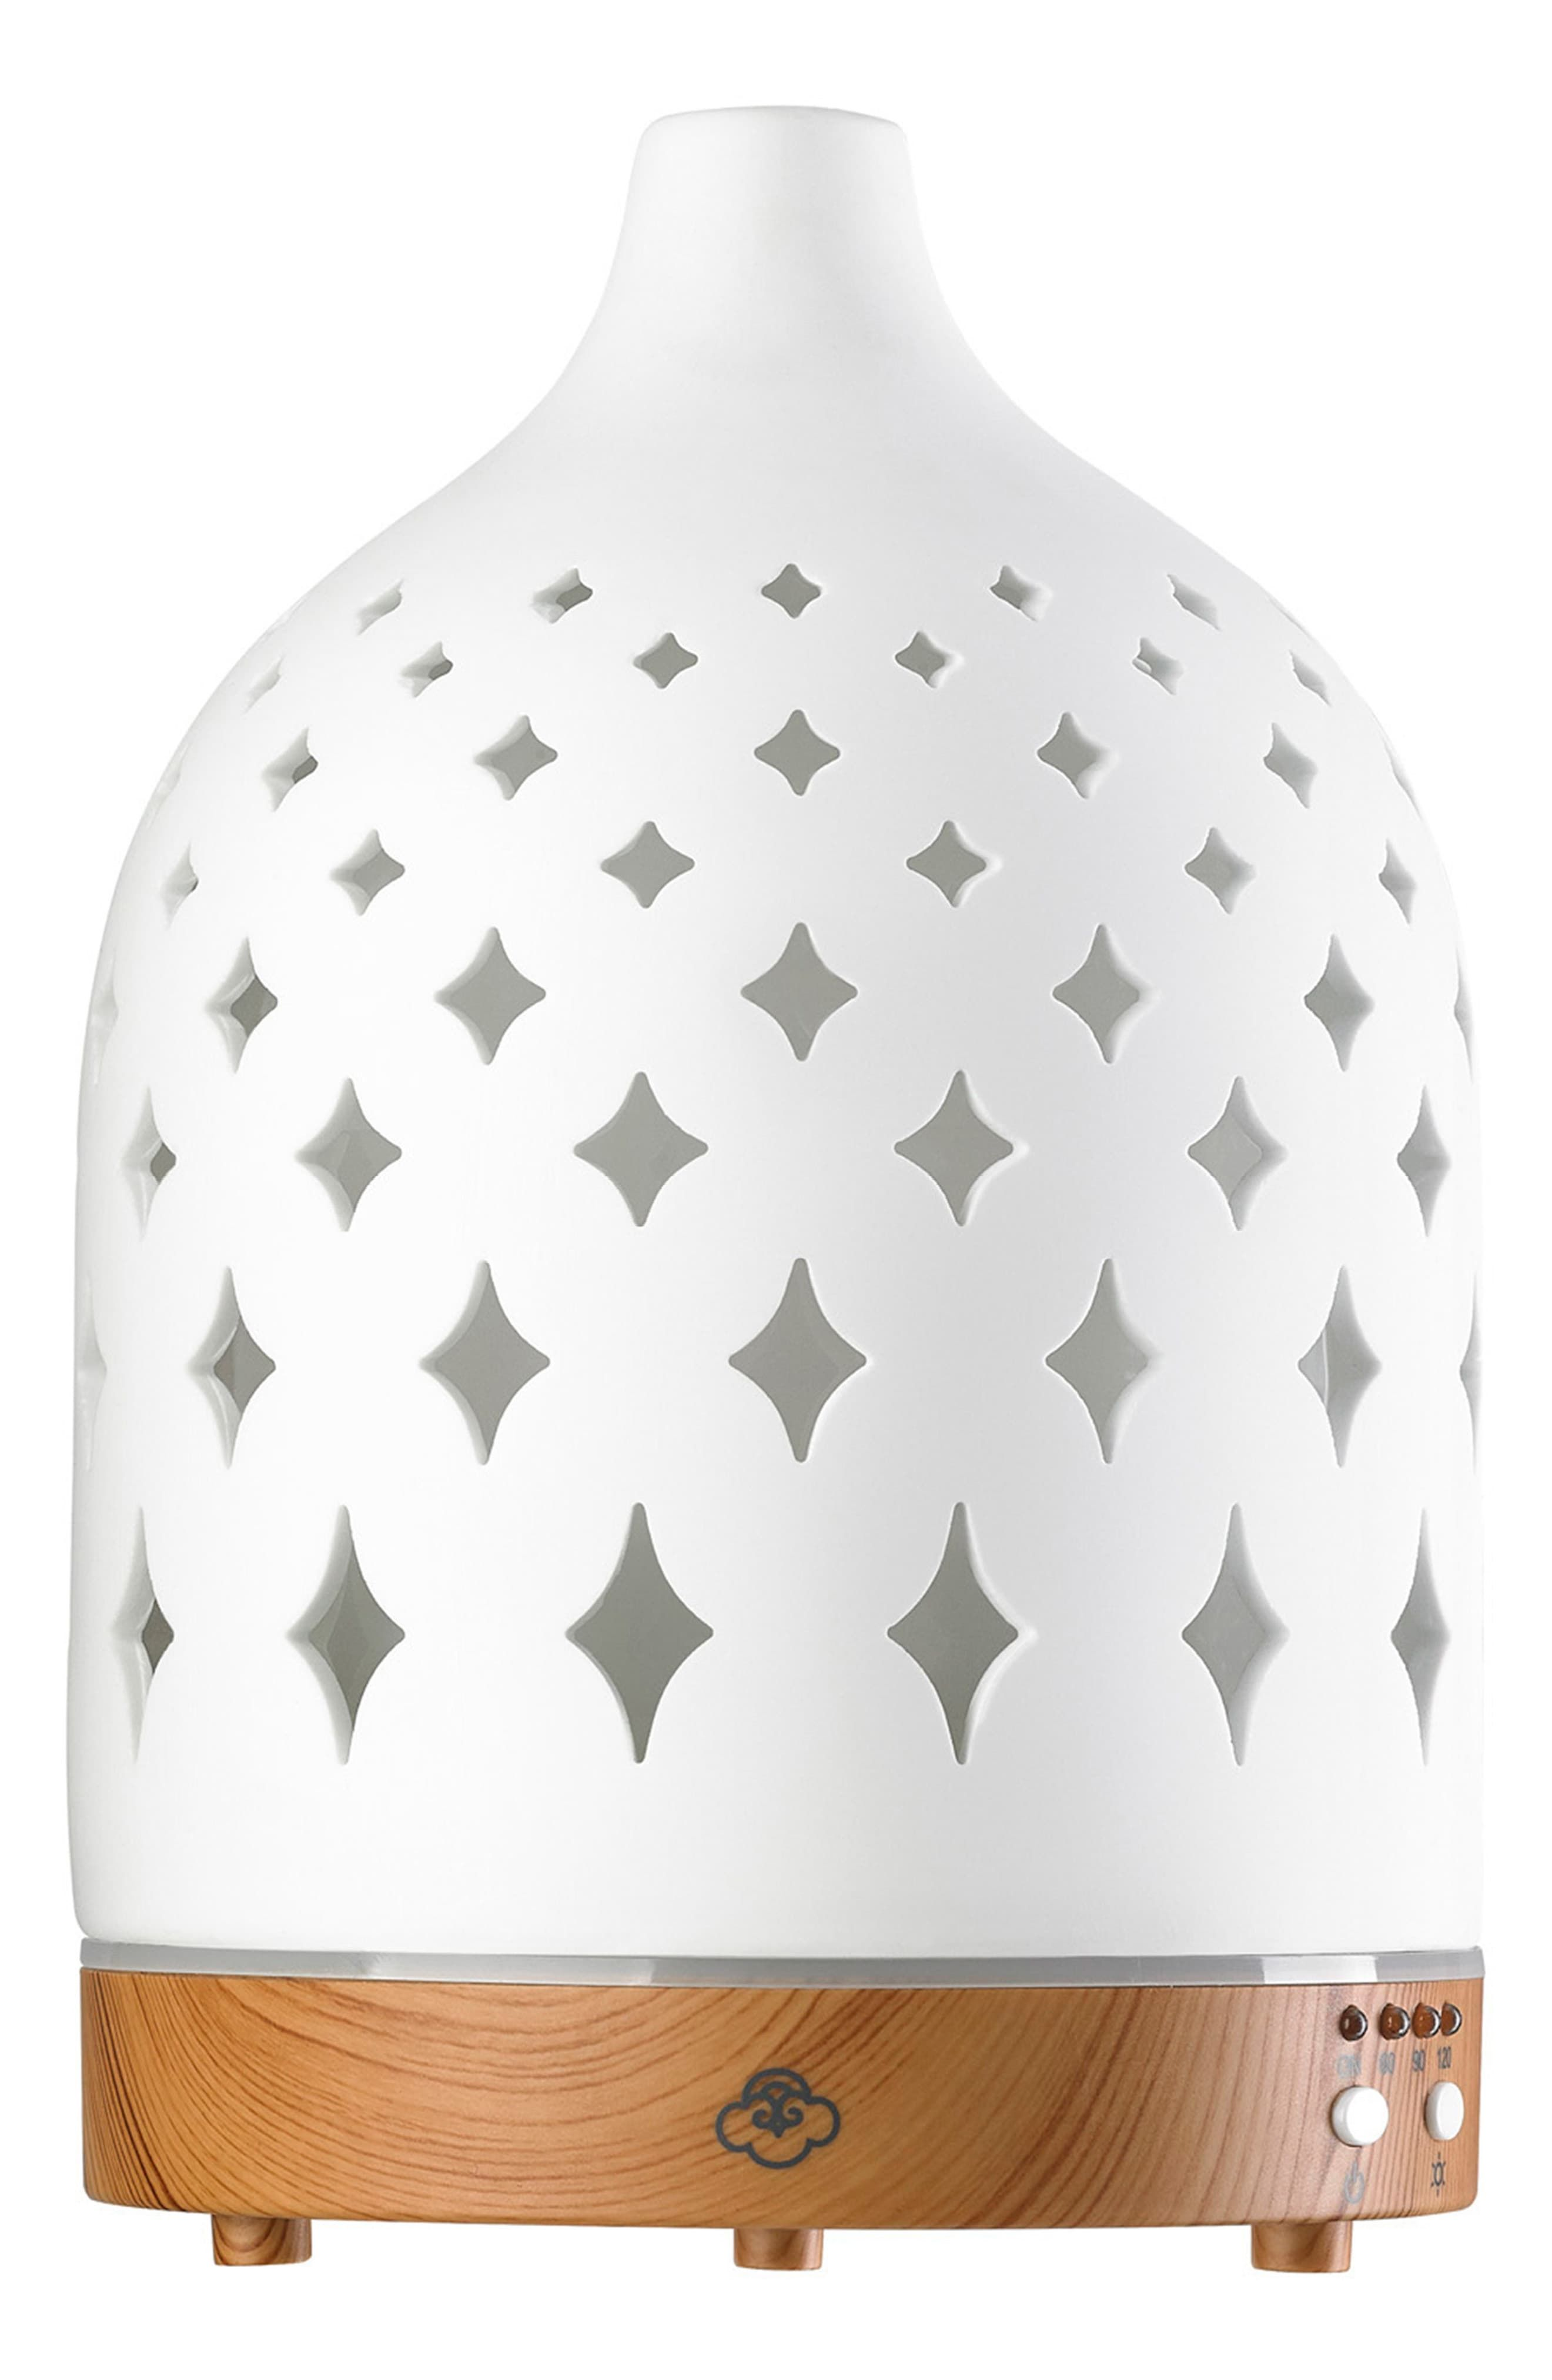 Serene House Supernova Electric Aromatherapy Diffuser In 2019